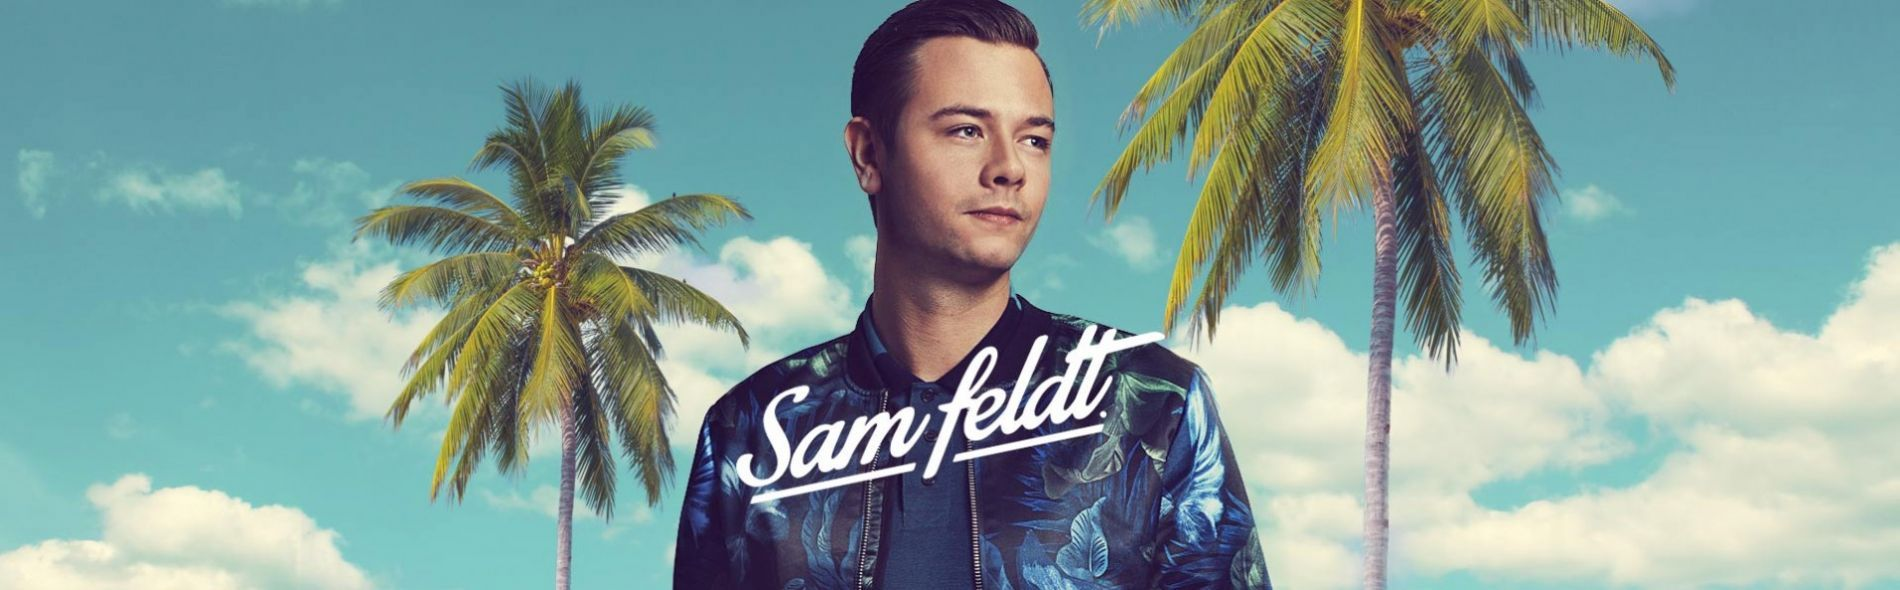 Sam Feldt Amsterdam Cruise Party